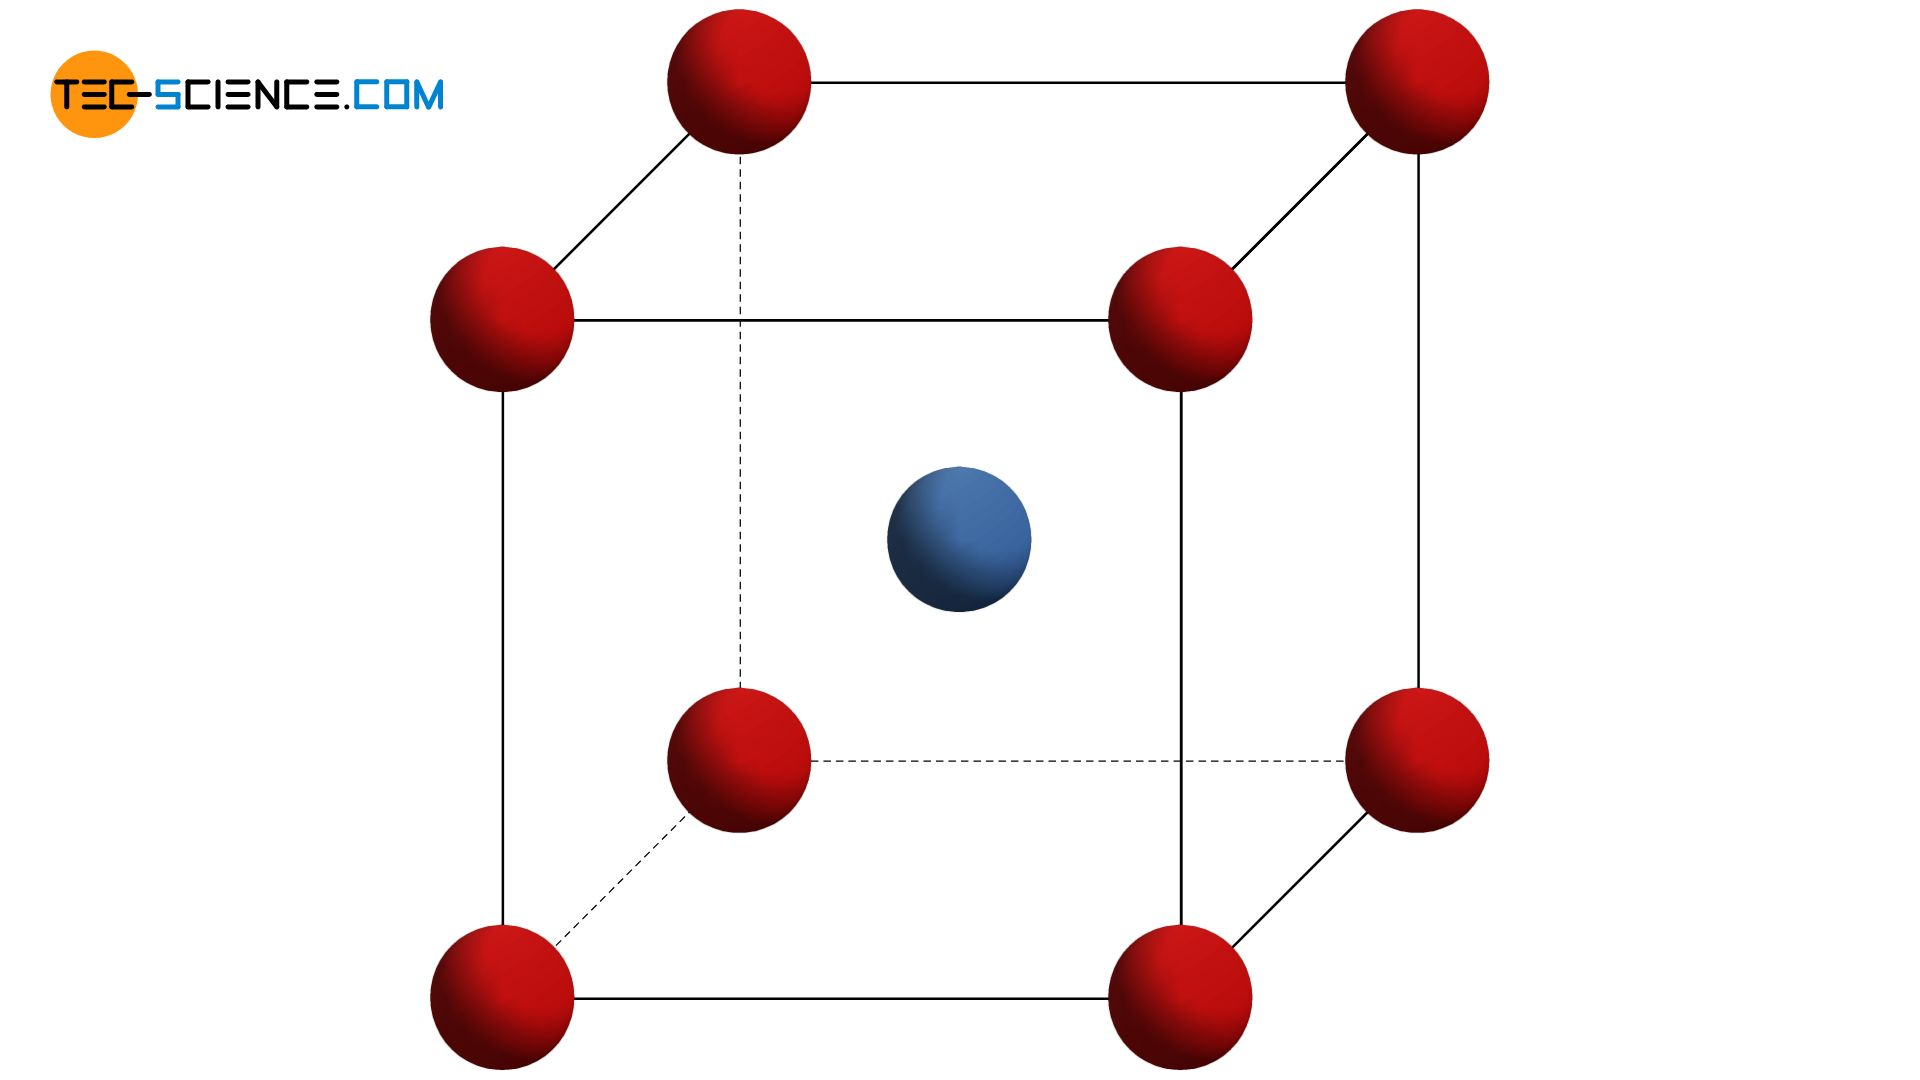 Body-centered cubic unit cell (bcc)